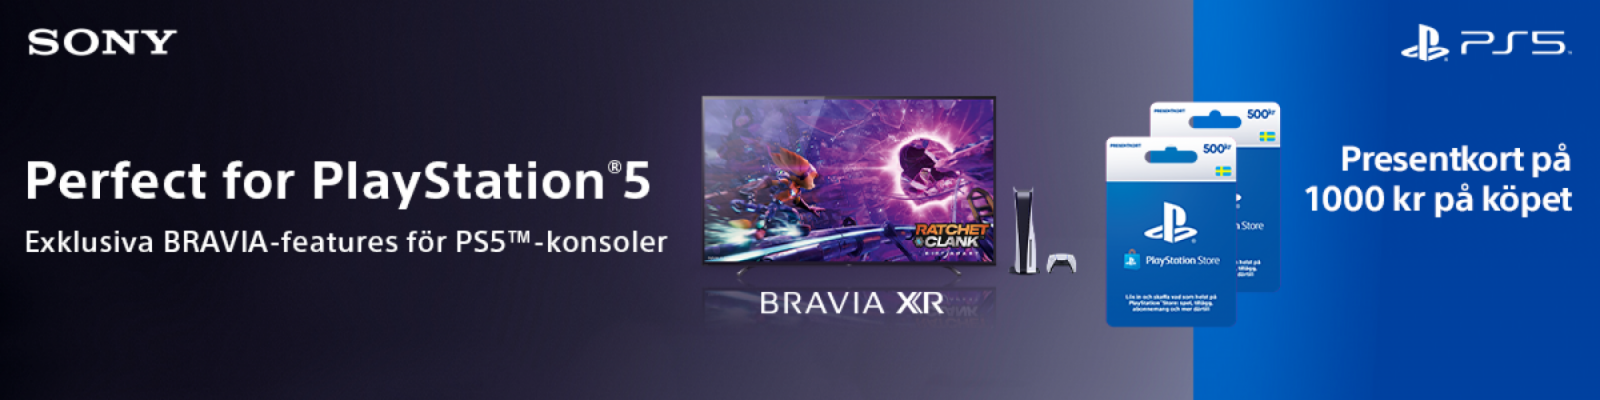 banner_sony_xr_75x95j.png